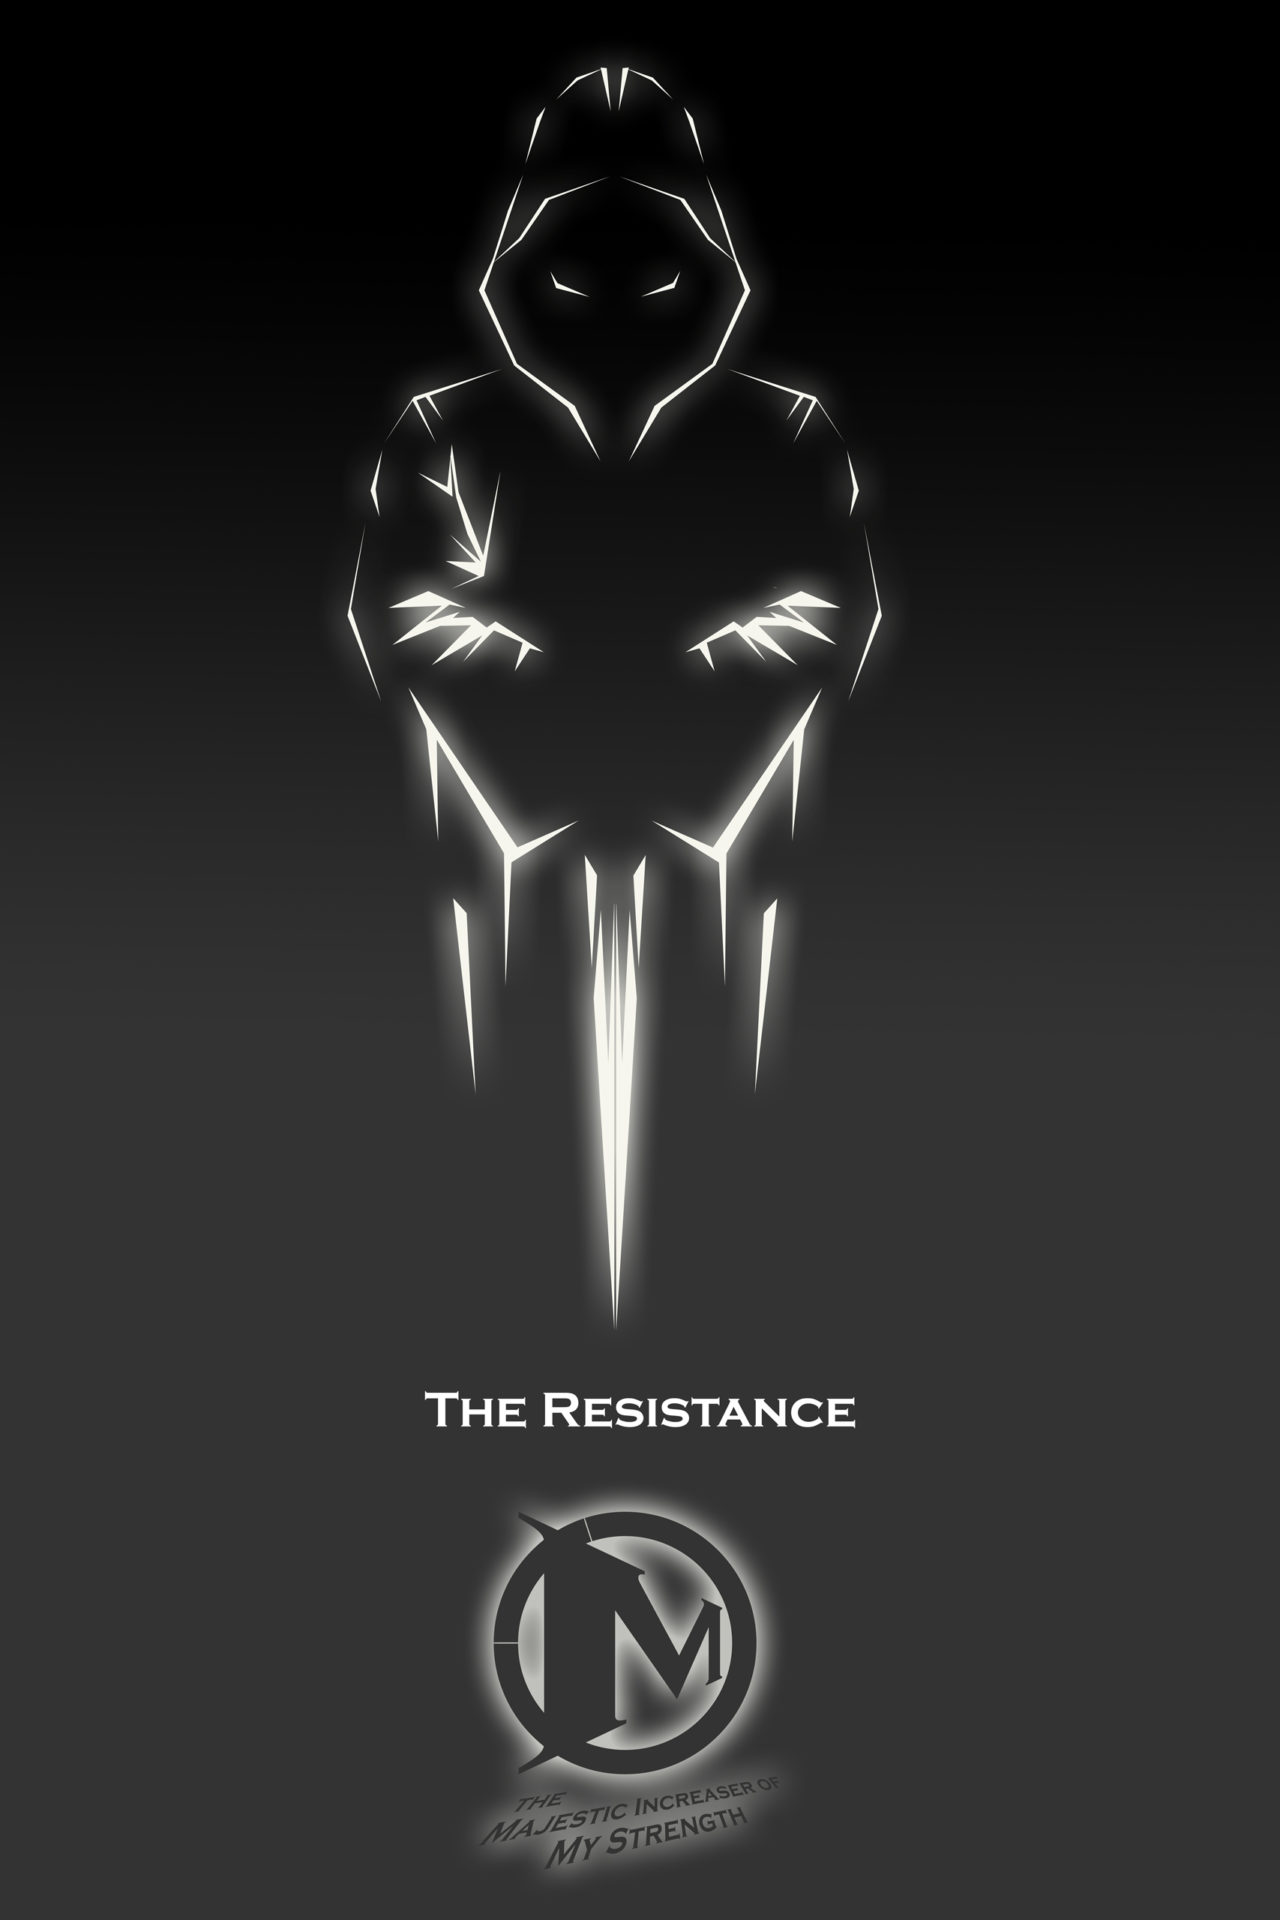 http://oziecargile.com/wp-content/uploads/2020/03/mims.characters.the-resistance.scaled-1280x1920.jpg